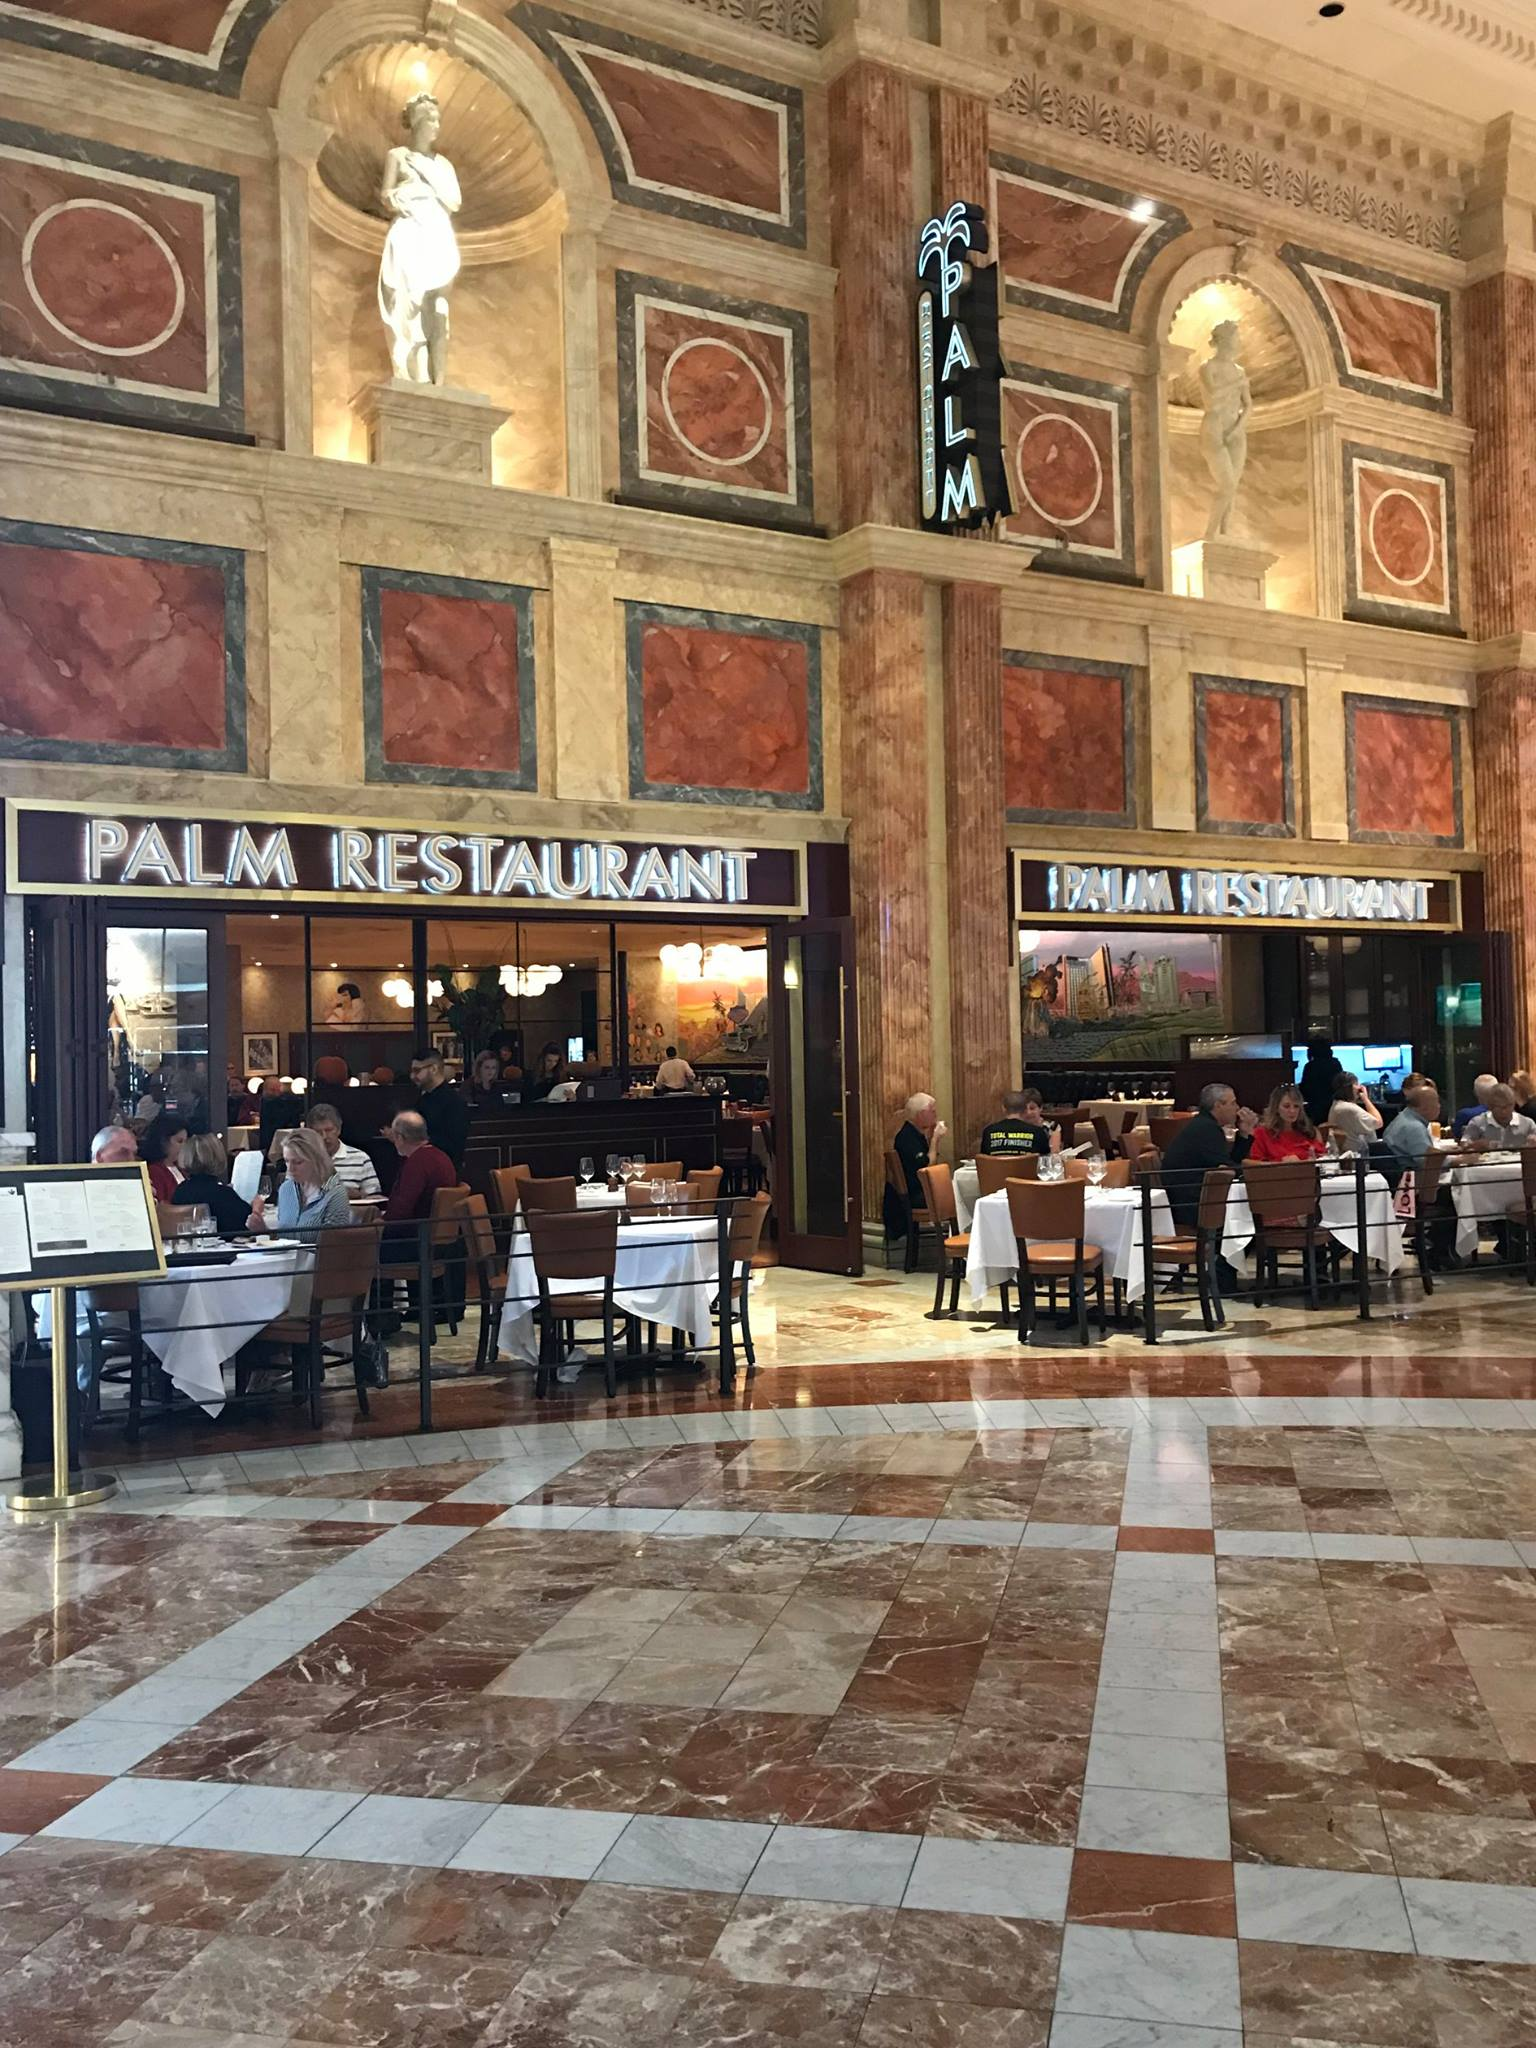 Pictures of Palm Restaurant at Caesars Palace/Forum Shops, steak, vegetables, and dessert